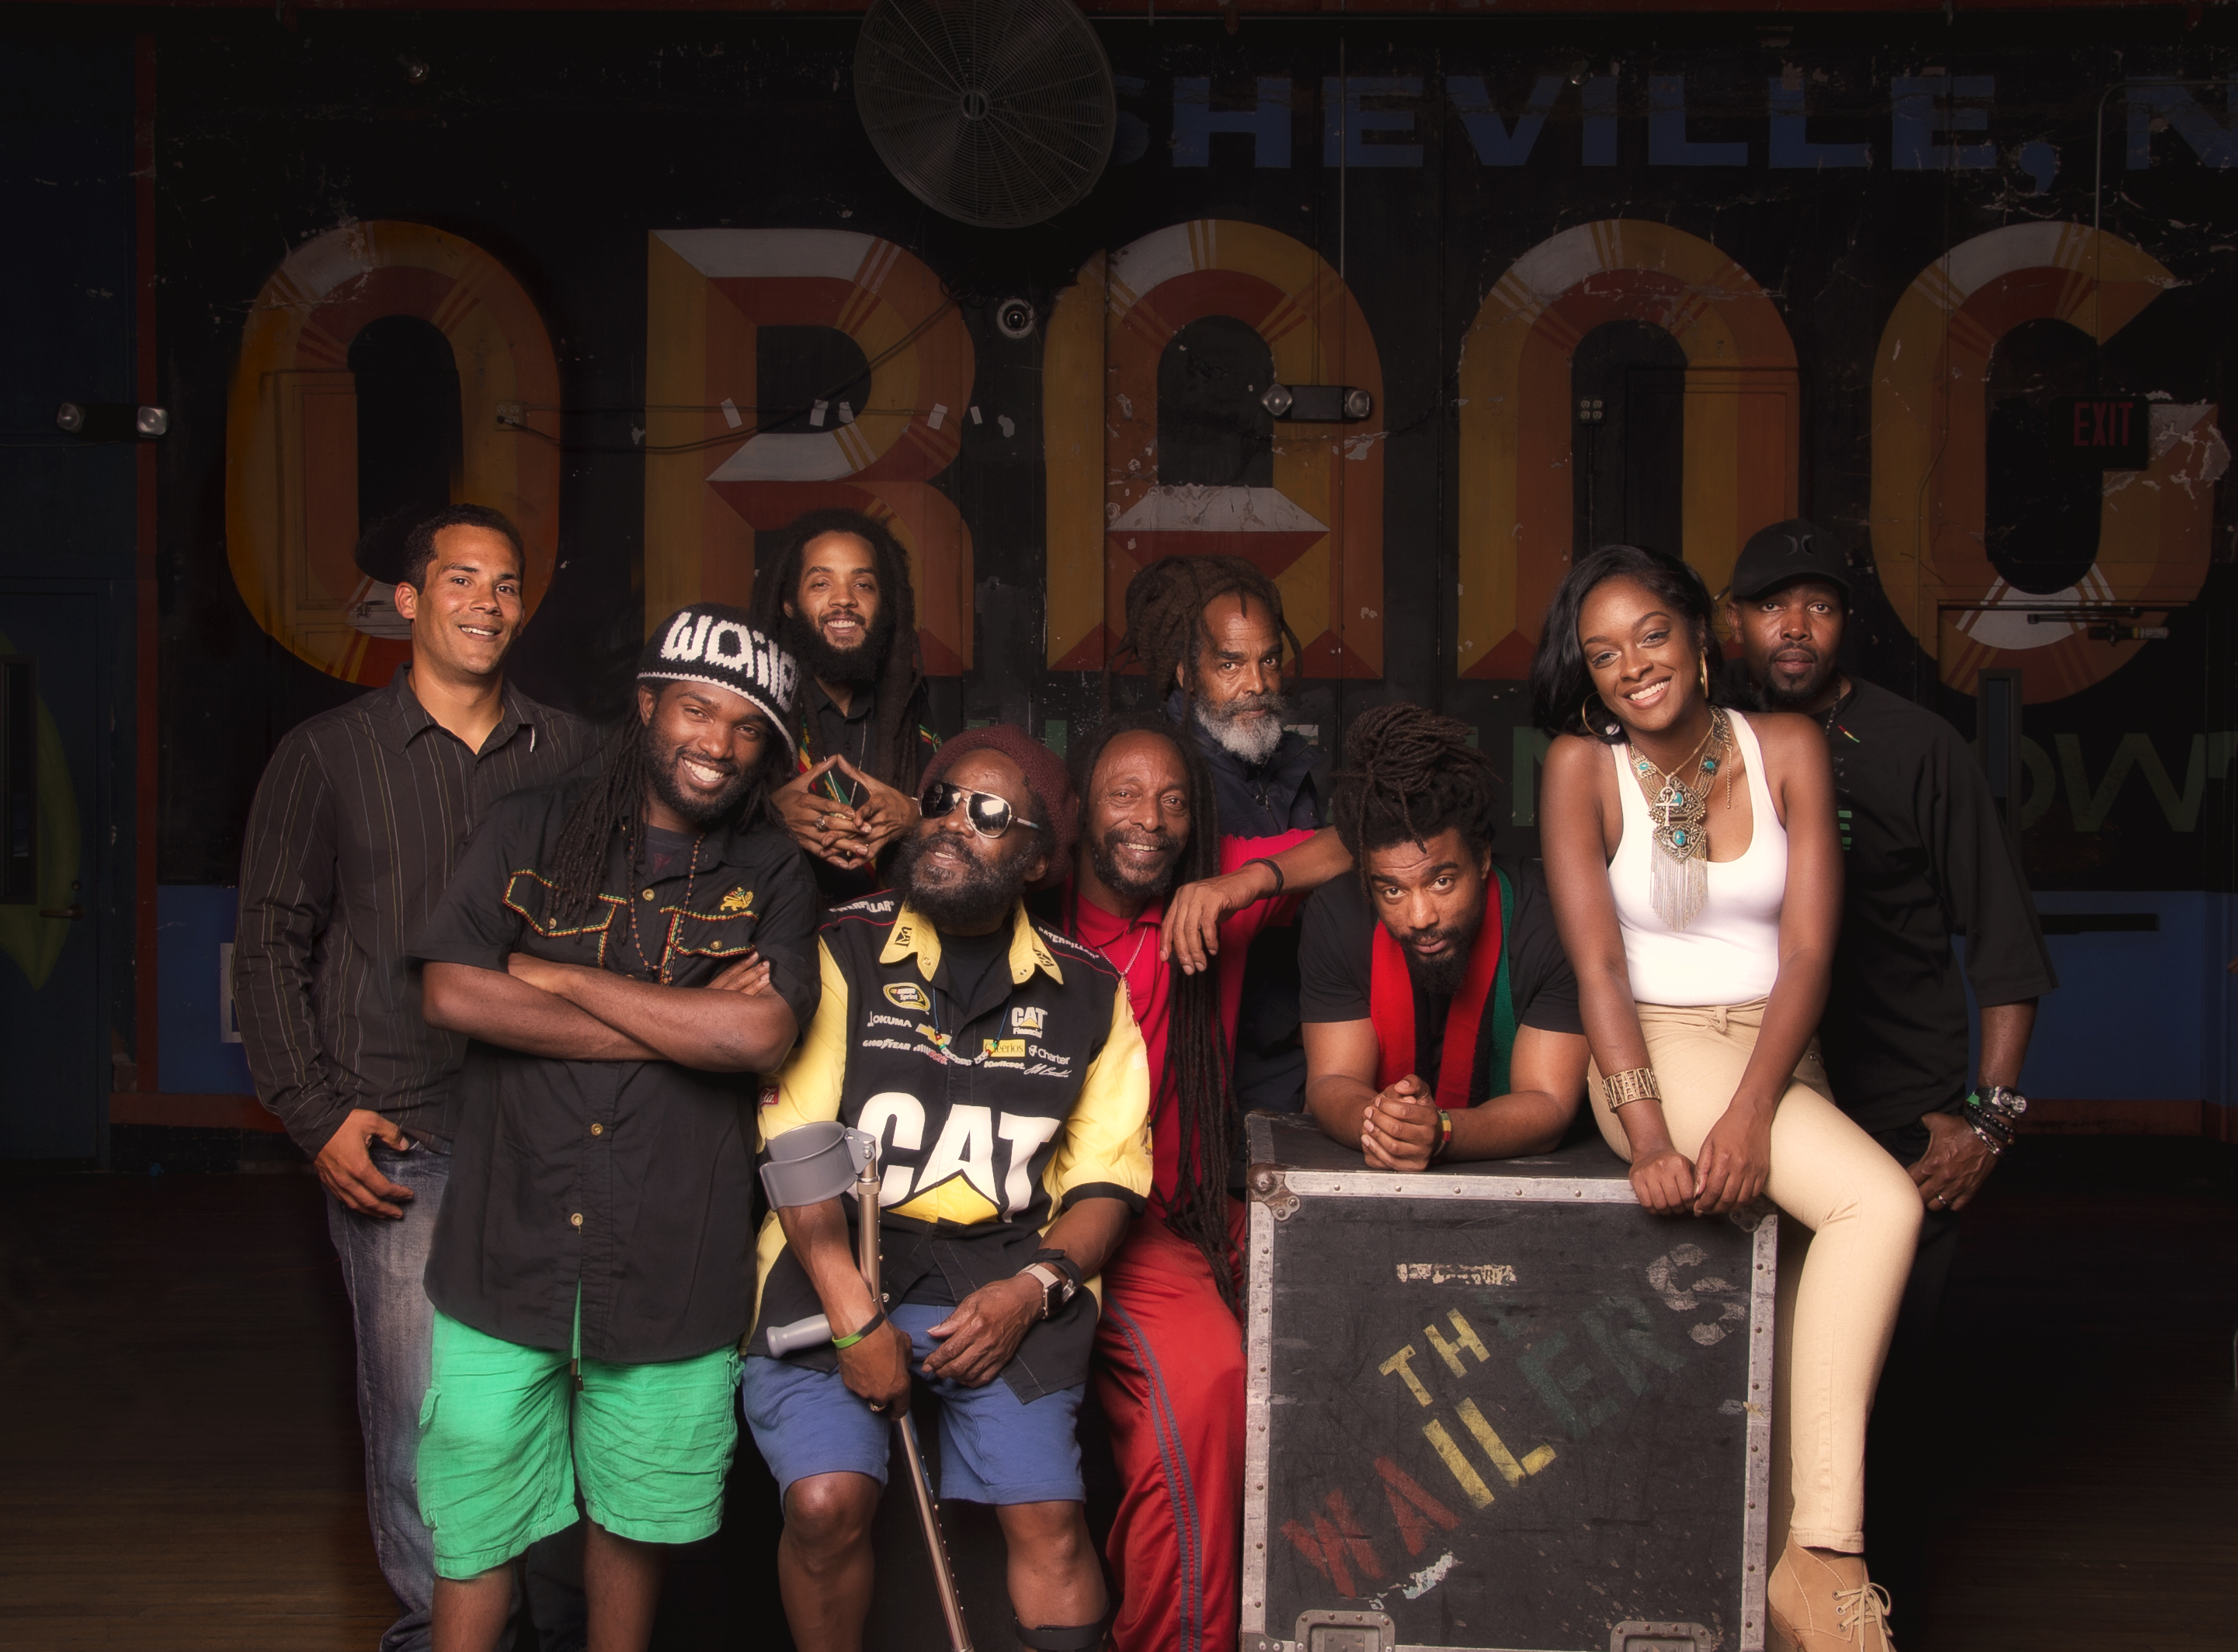 DT_The Wailers_Group